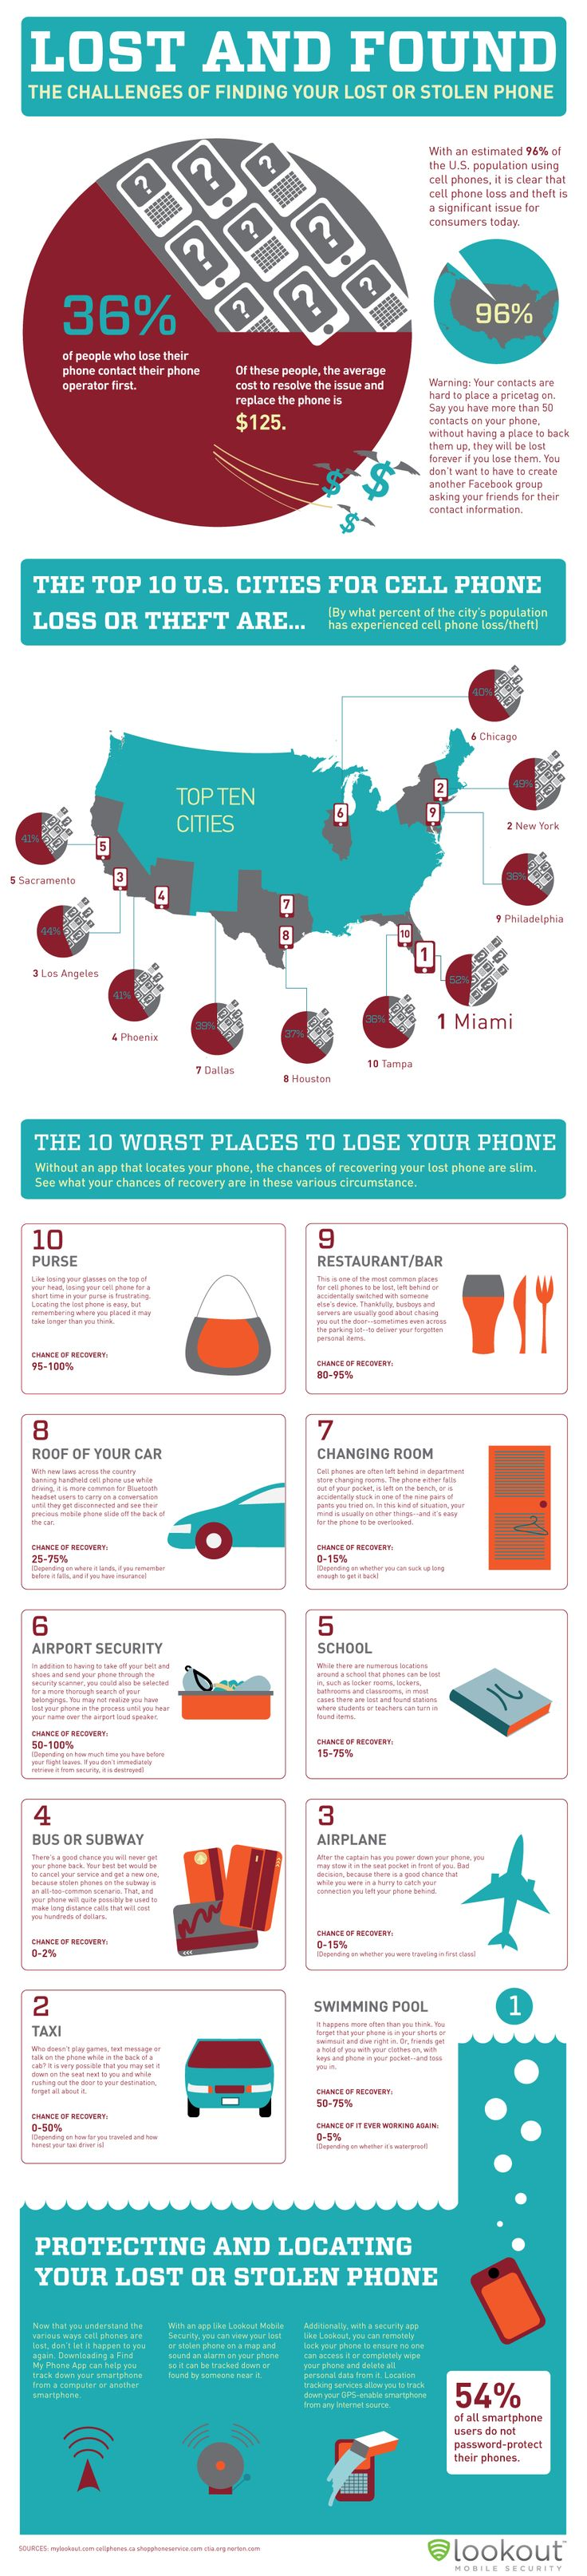 Lost and Found... The Challenges of Finding Your Lost or Stolen Phone